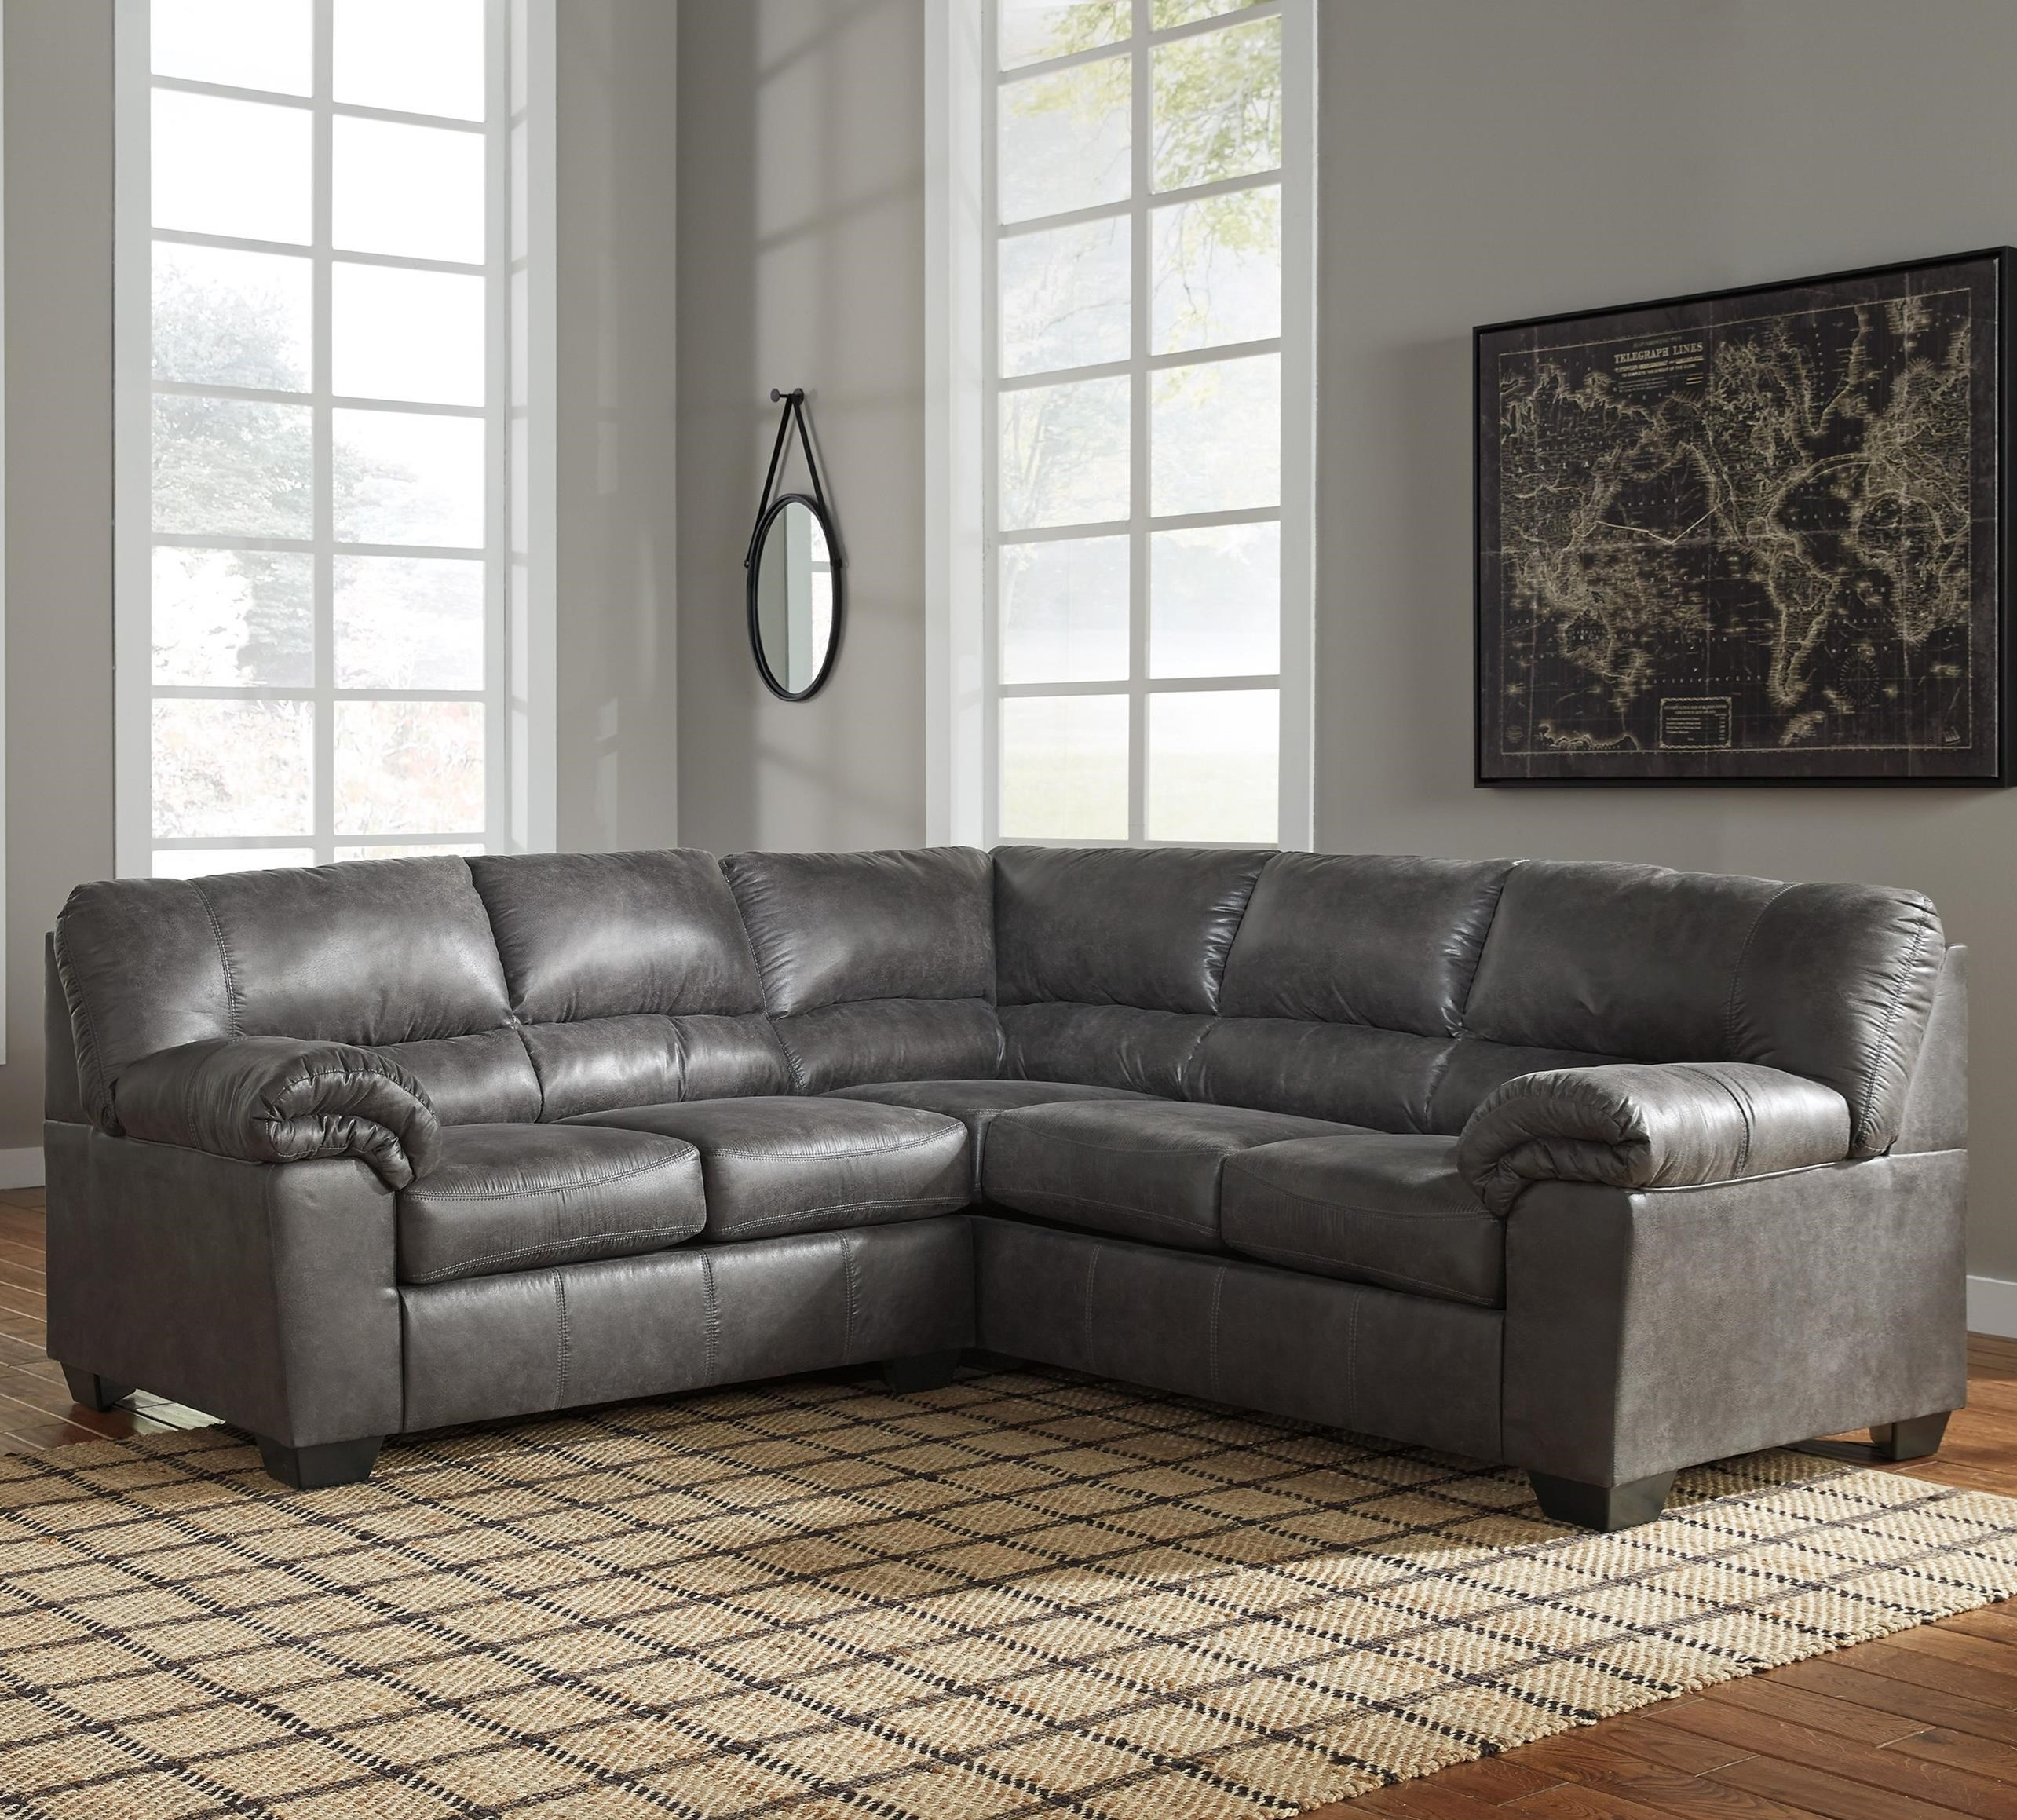 Bladen 2-Piece Sectional by Signature Design by Ashley at Sparks HomeStore